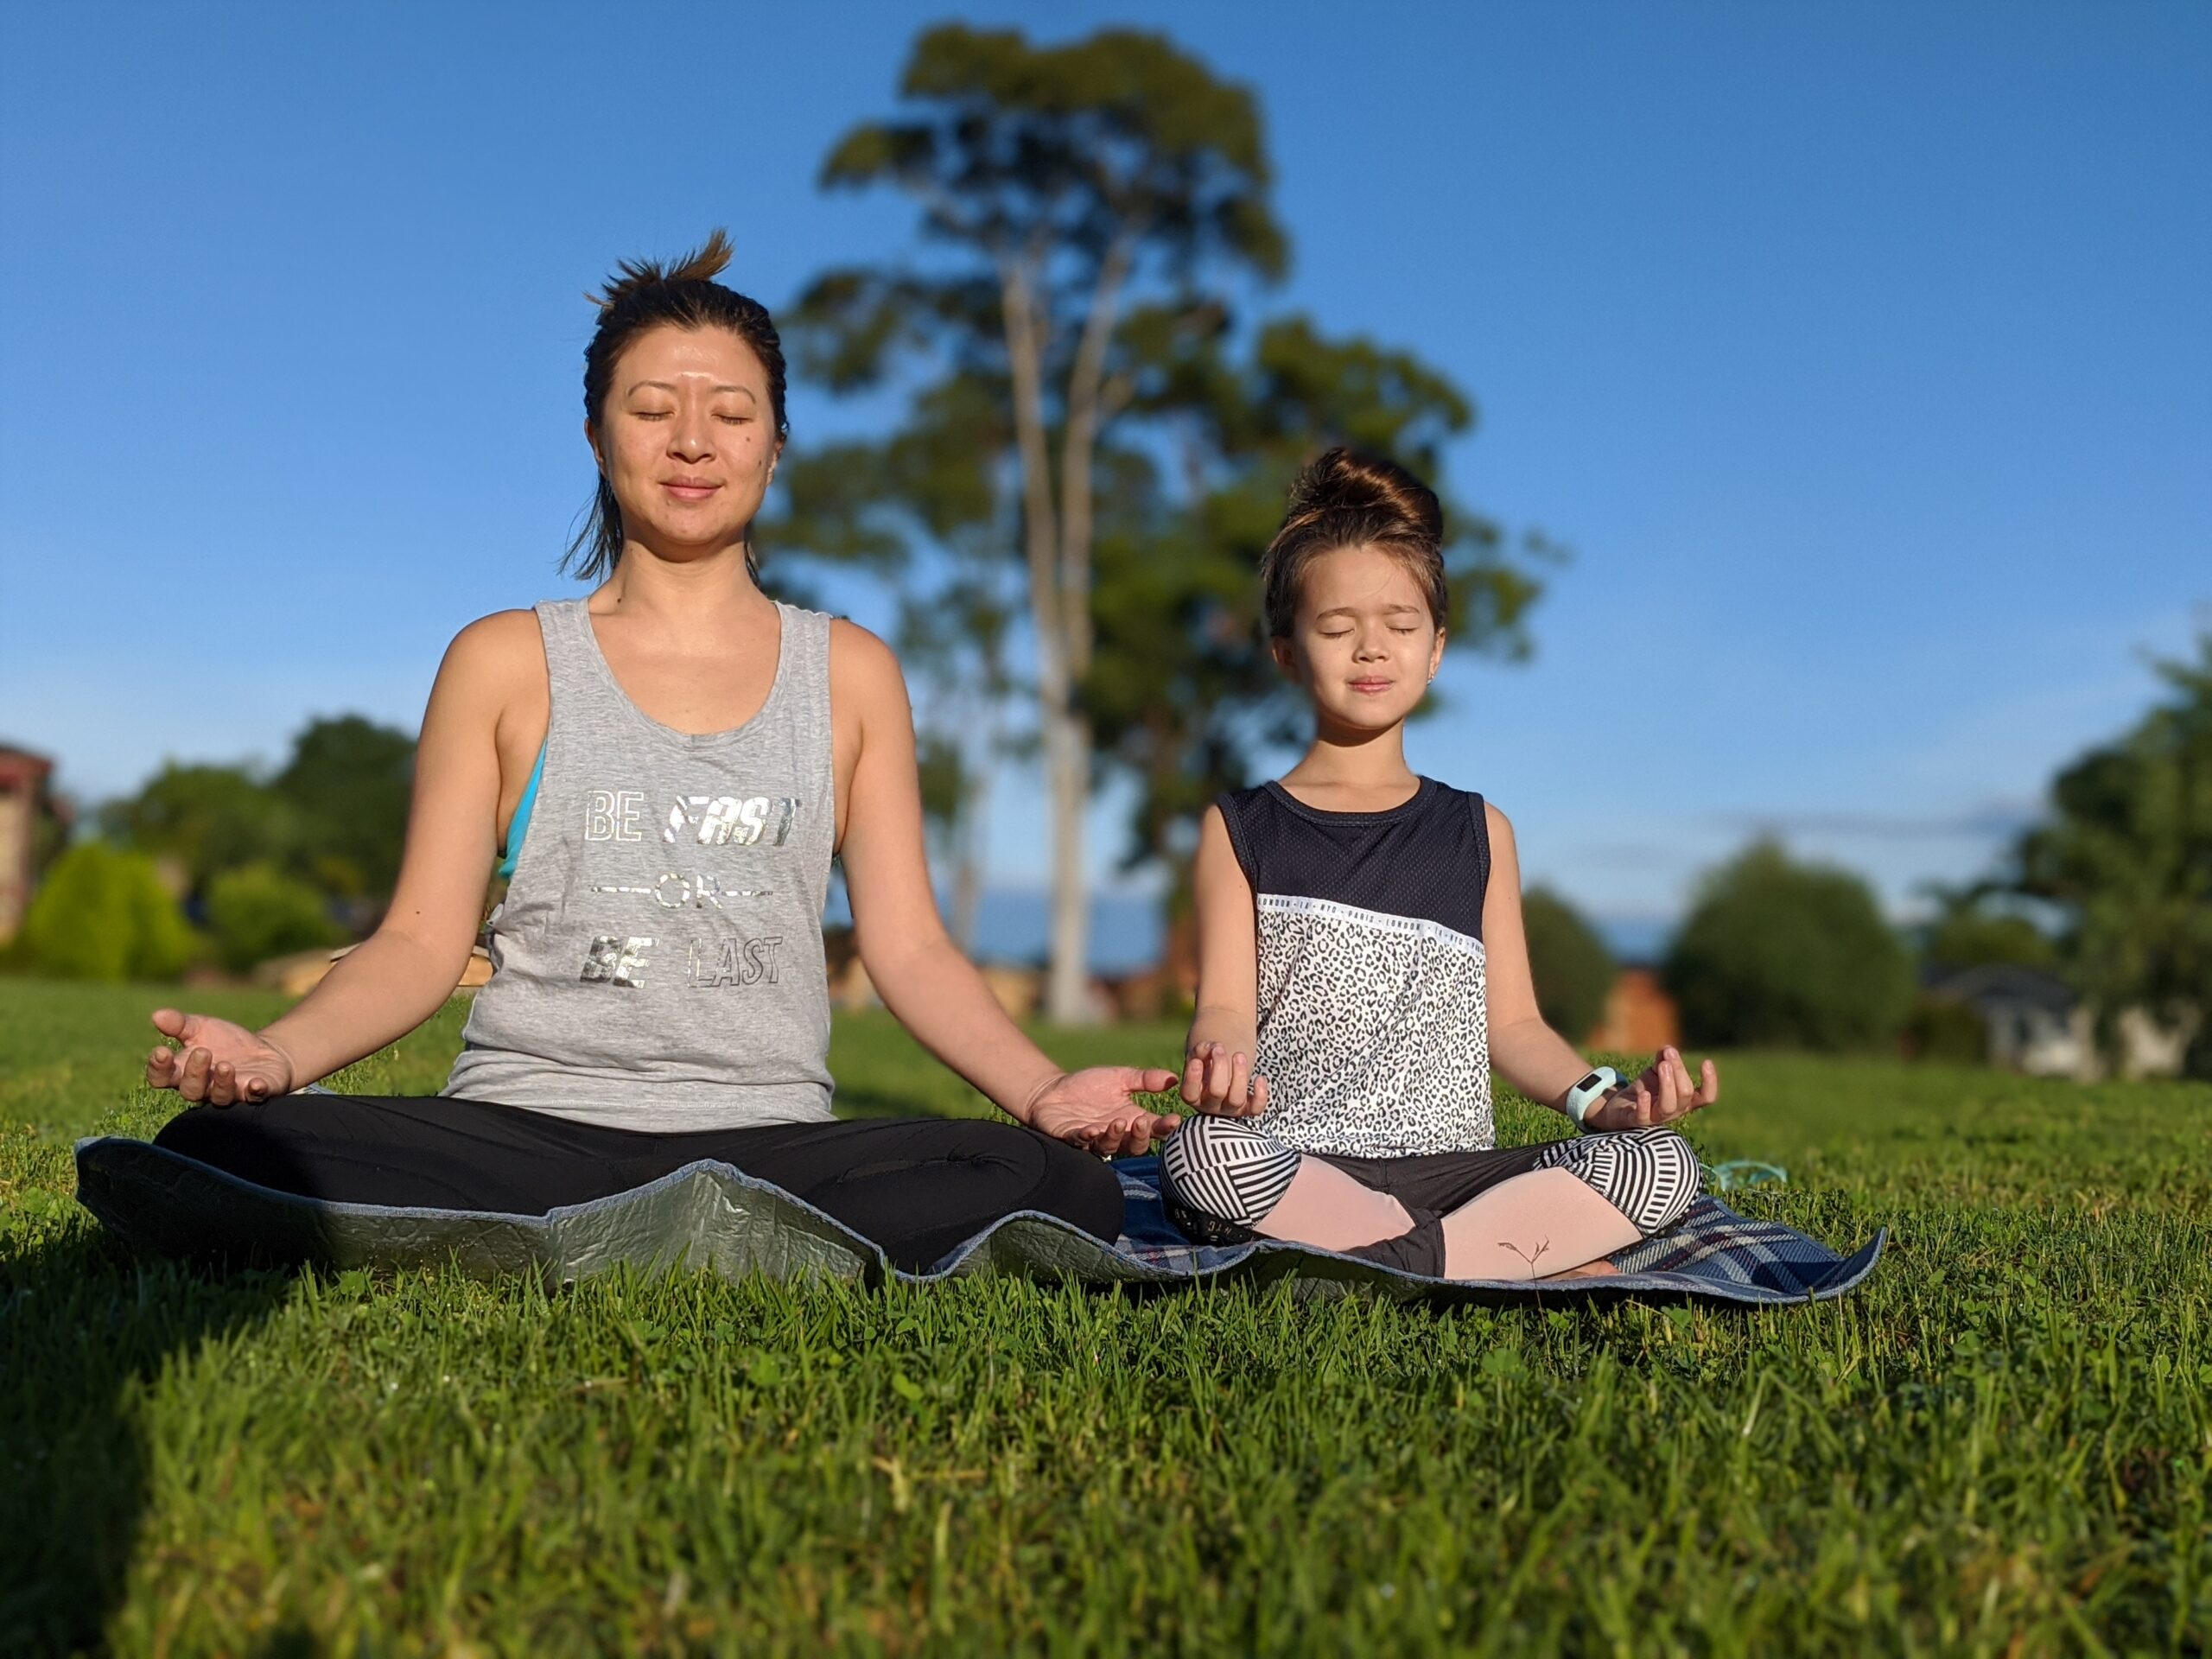 Jessica Melville and daughter yoga